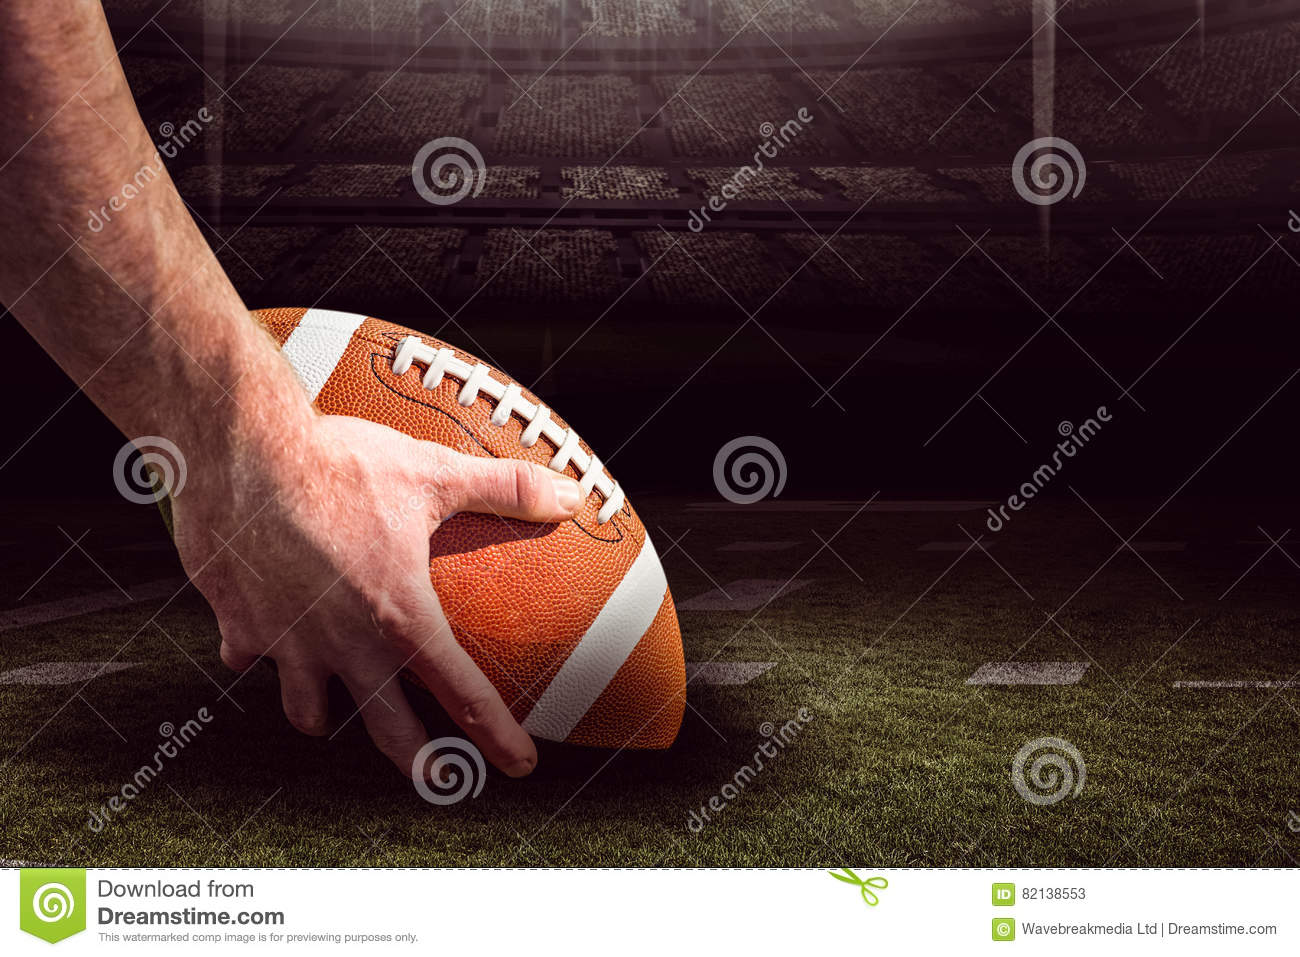 Composite Image Of American Football Player Preparing For A